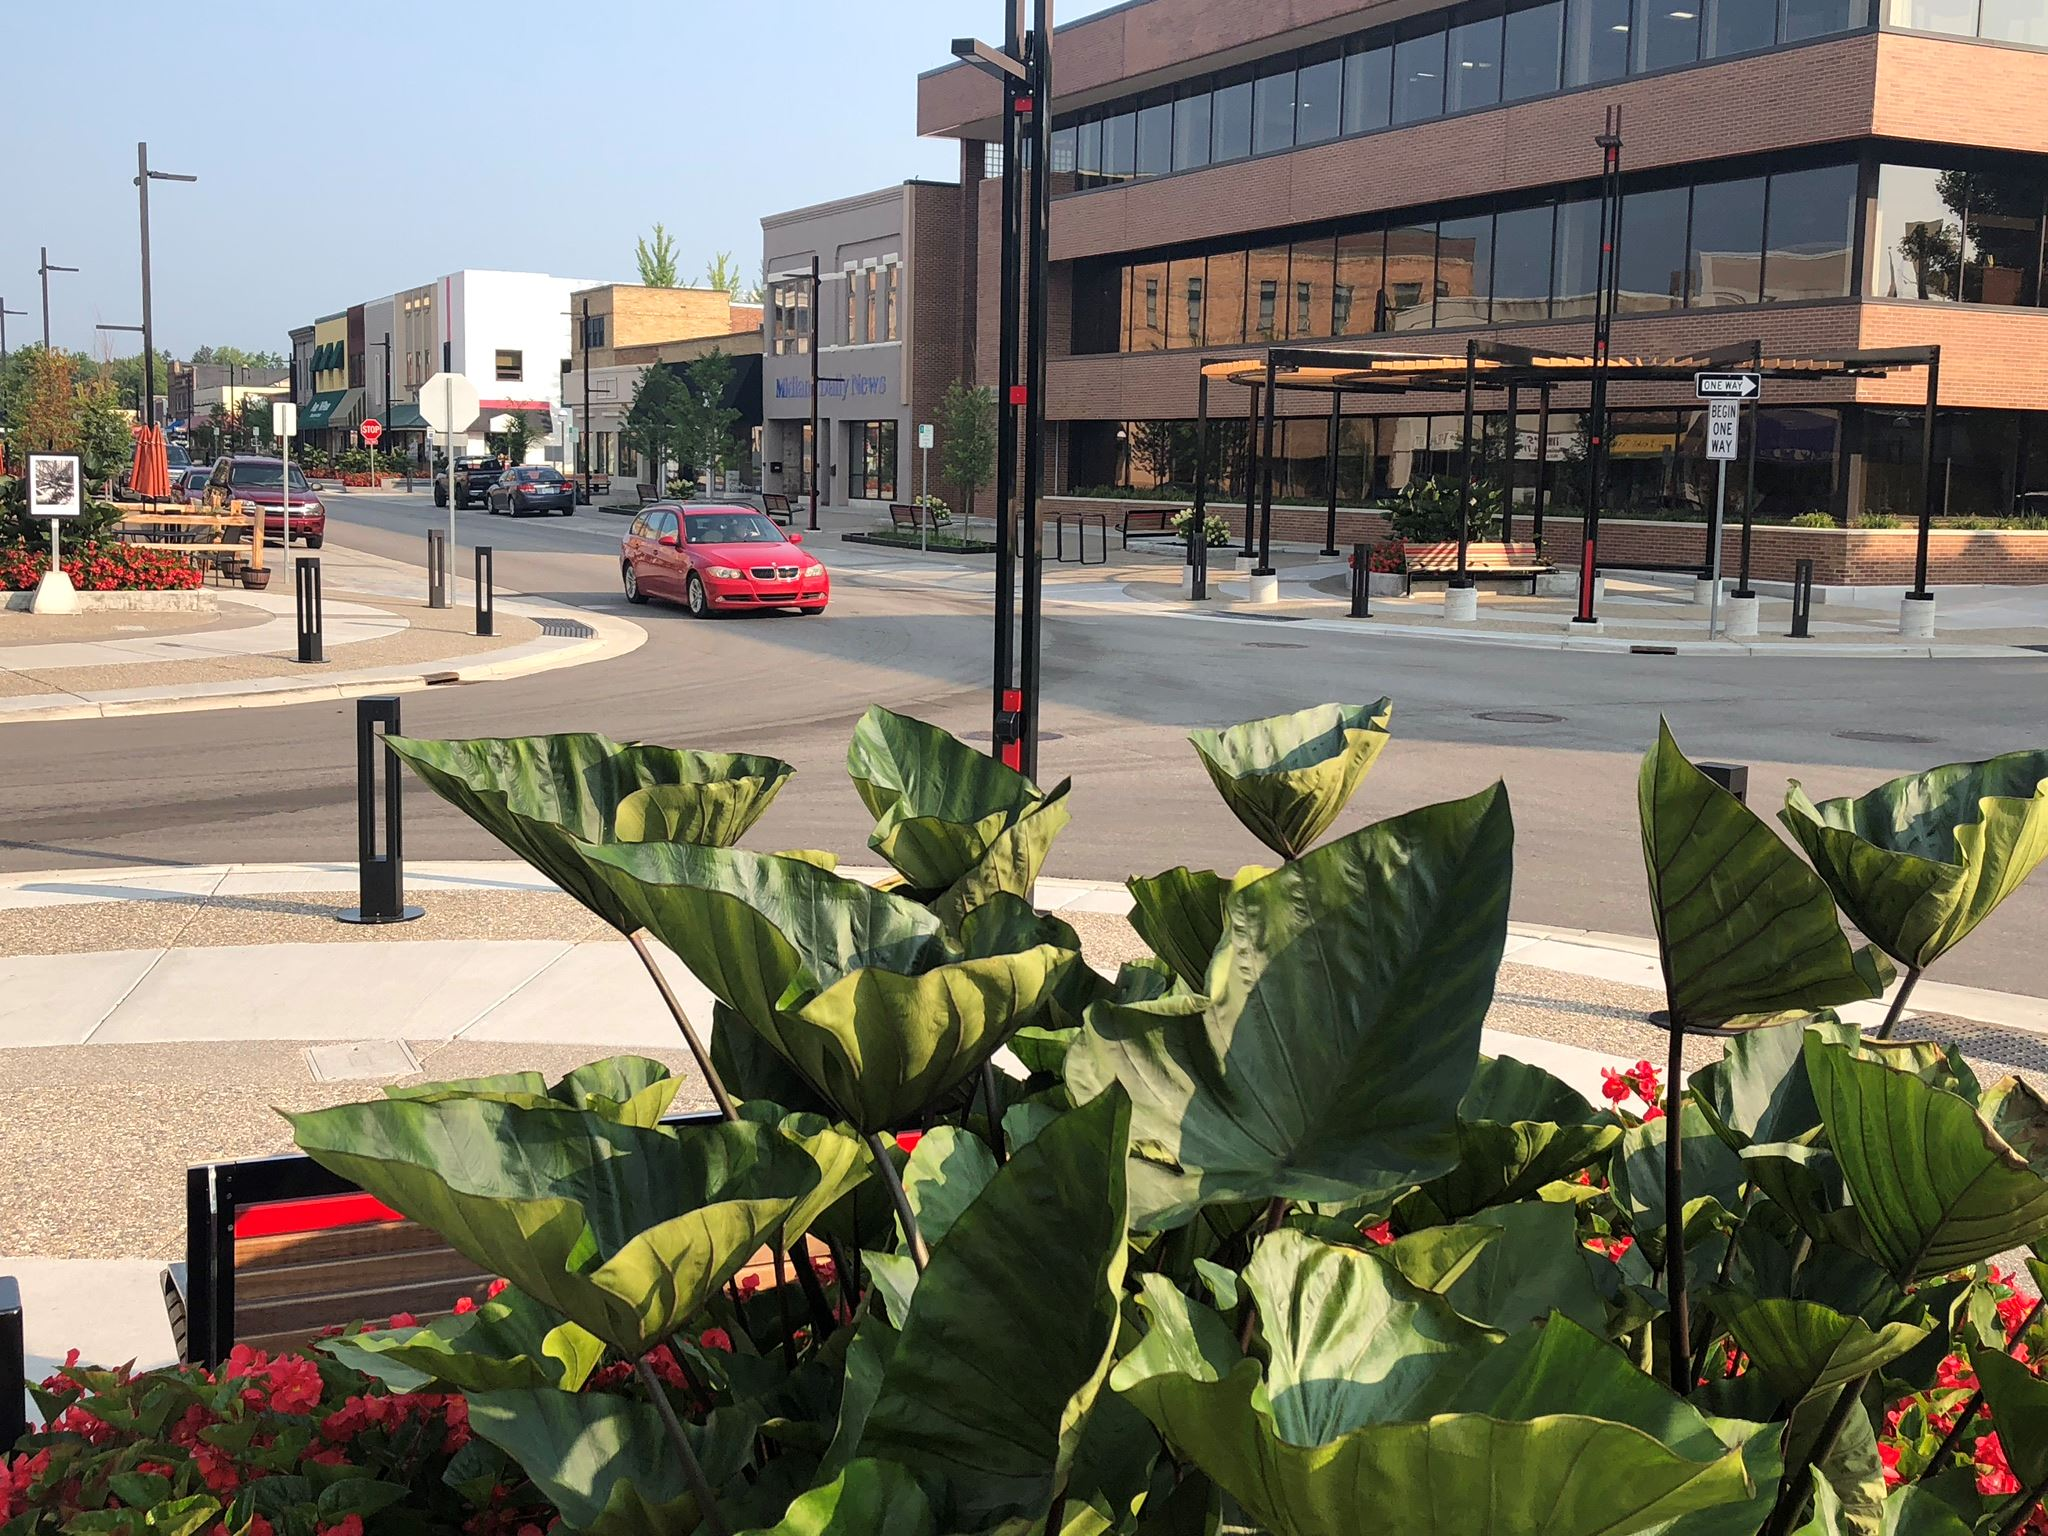 A view of downtown with red flower, a red car on the road, and brown brick